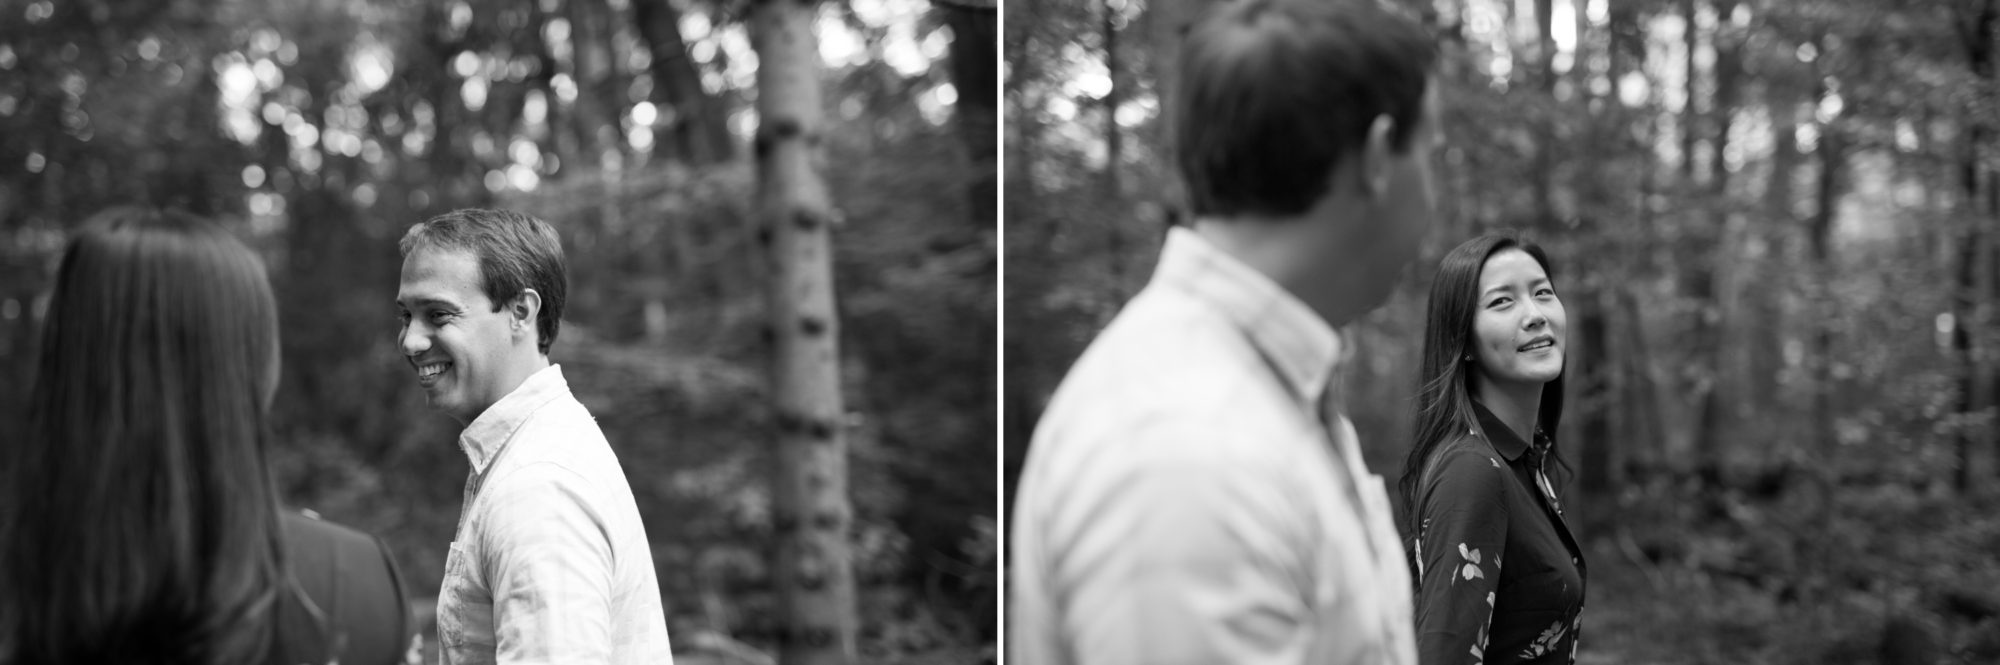 Bride Groom Engagement Session, Sheppard's Bush, Zsuzsi Pal Photography